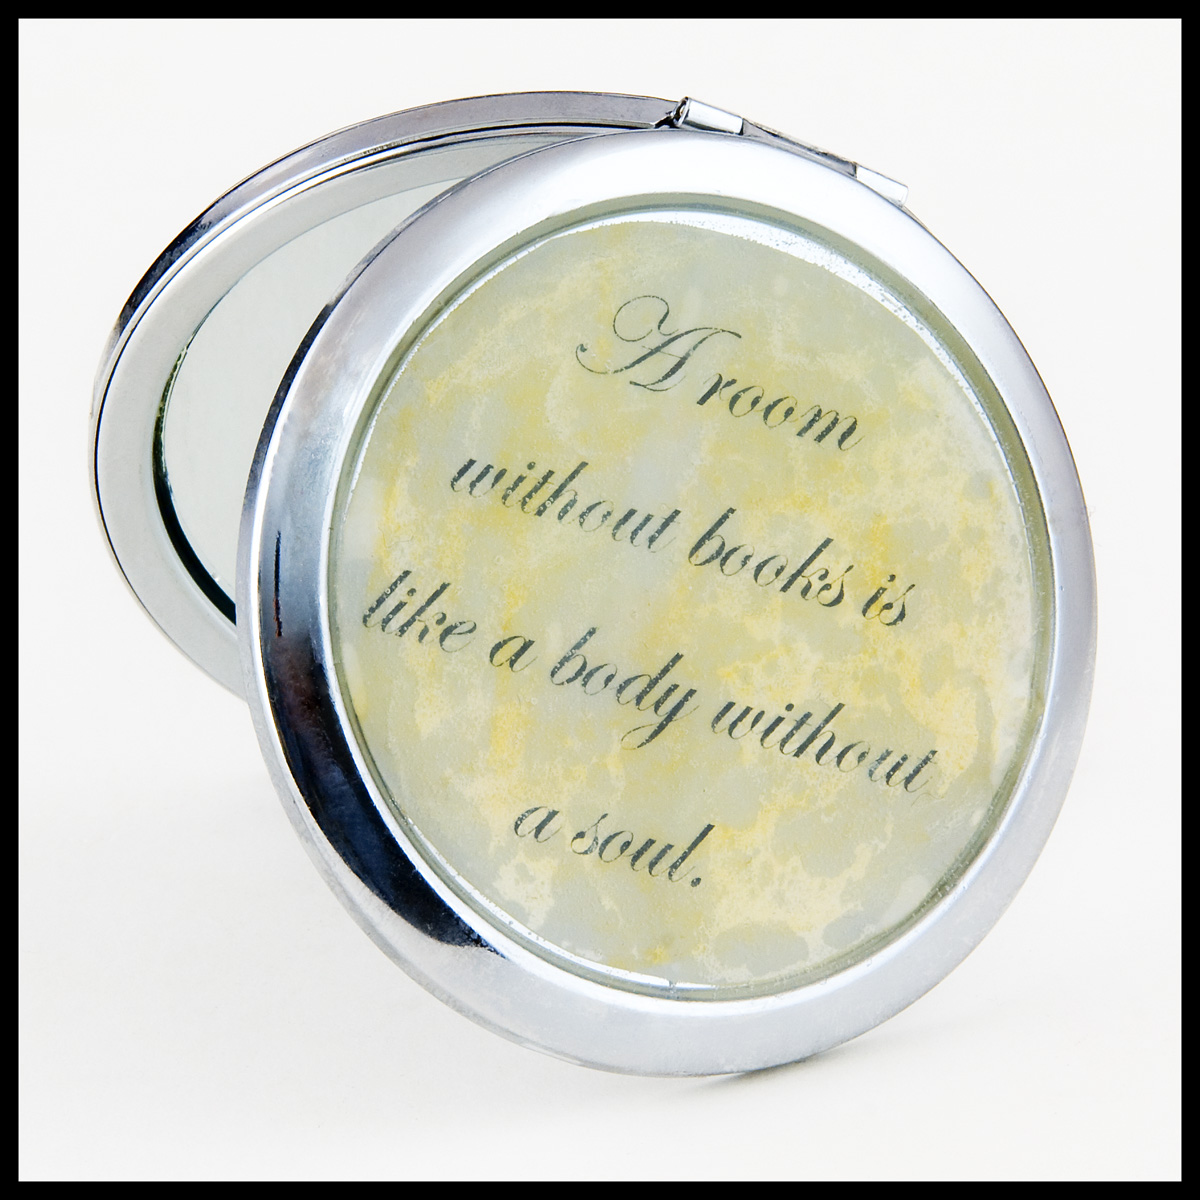 Book-themed mirror compacts